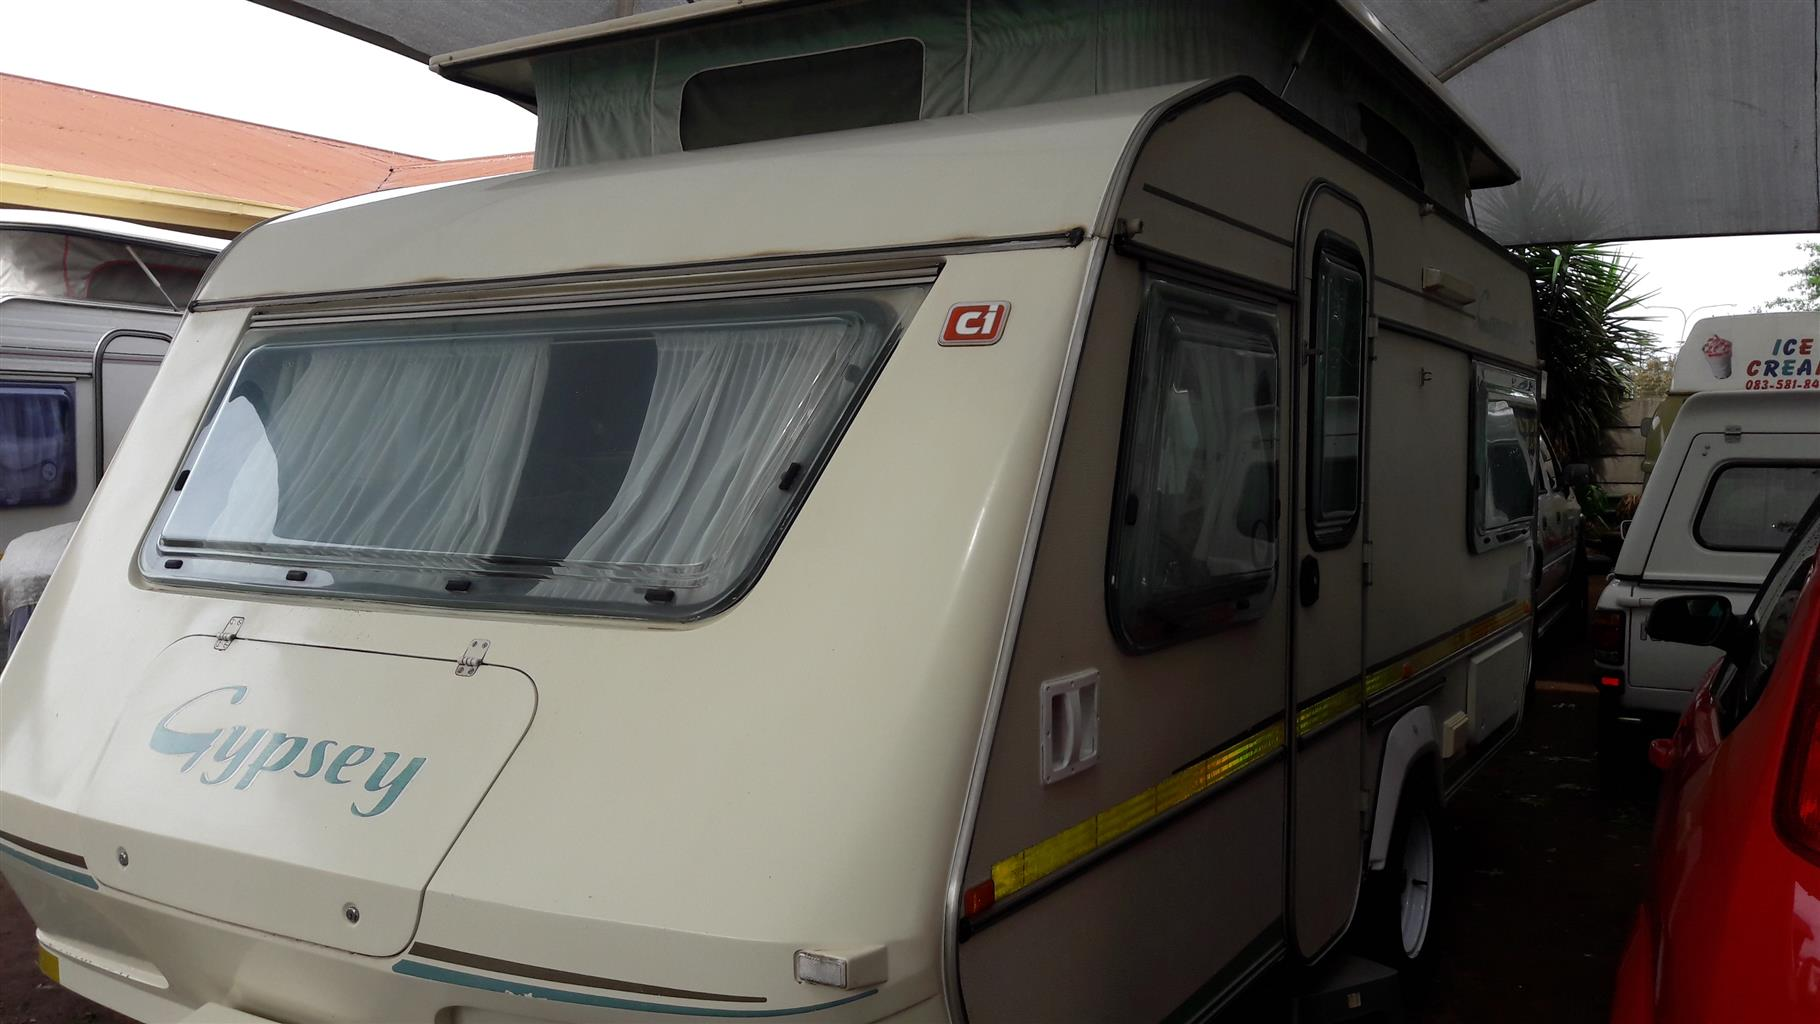 GYPSEY CARAVETTE 6 WITH FULL TENT IN EXCELLENT CONDITION MUST BE SEEN